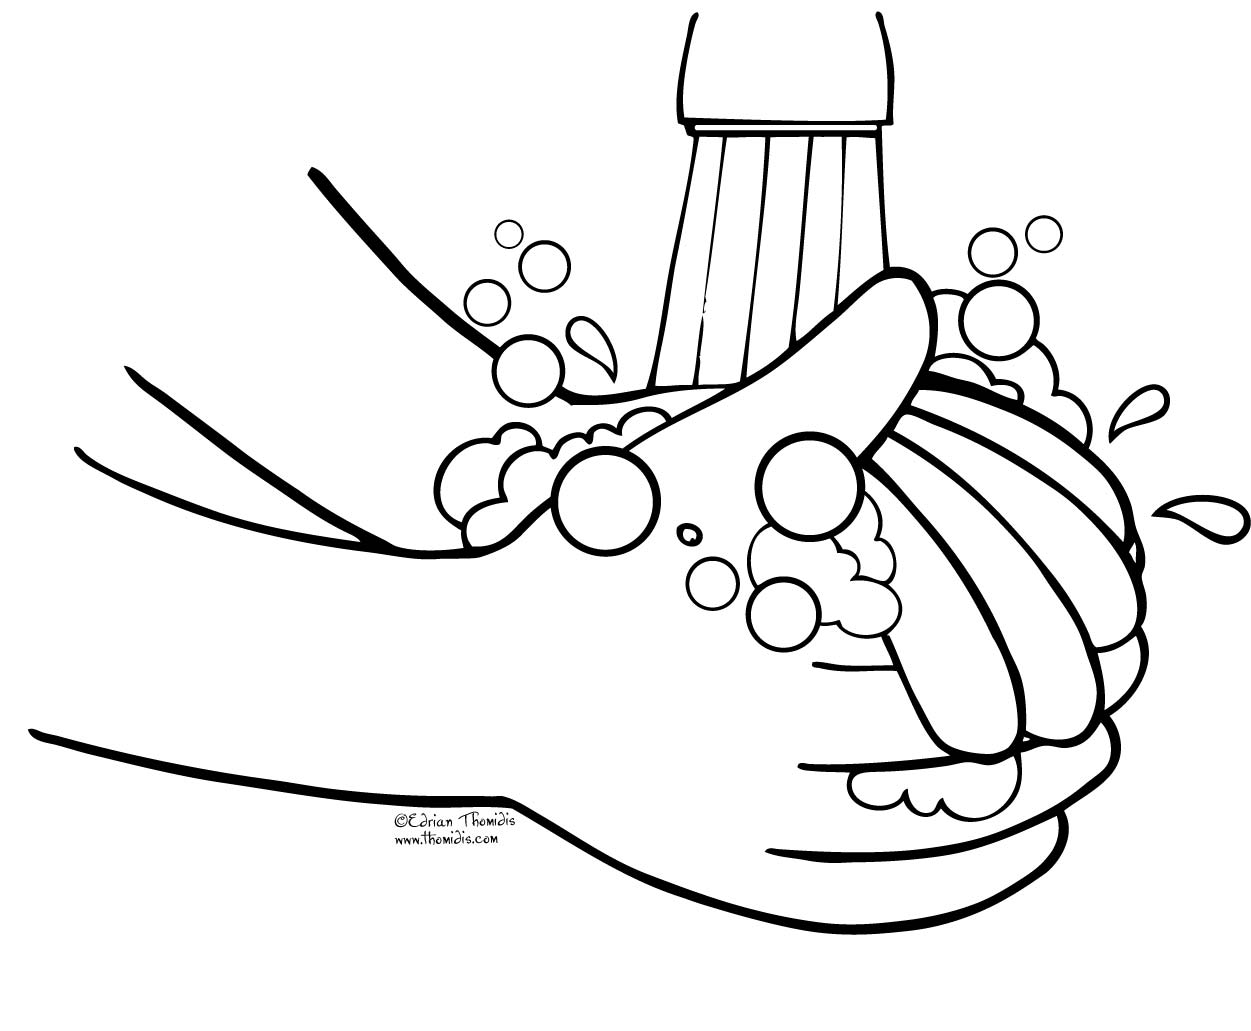 1251x1031 Hand Washing Coloring Pages For Kids